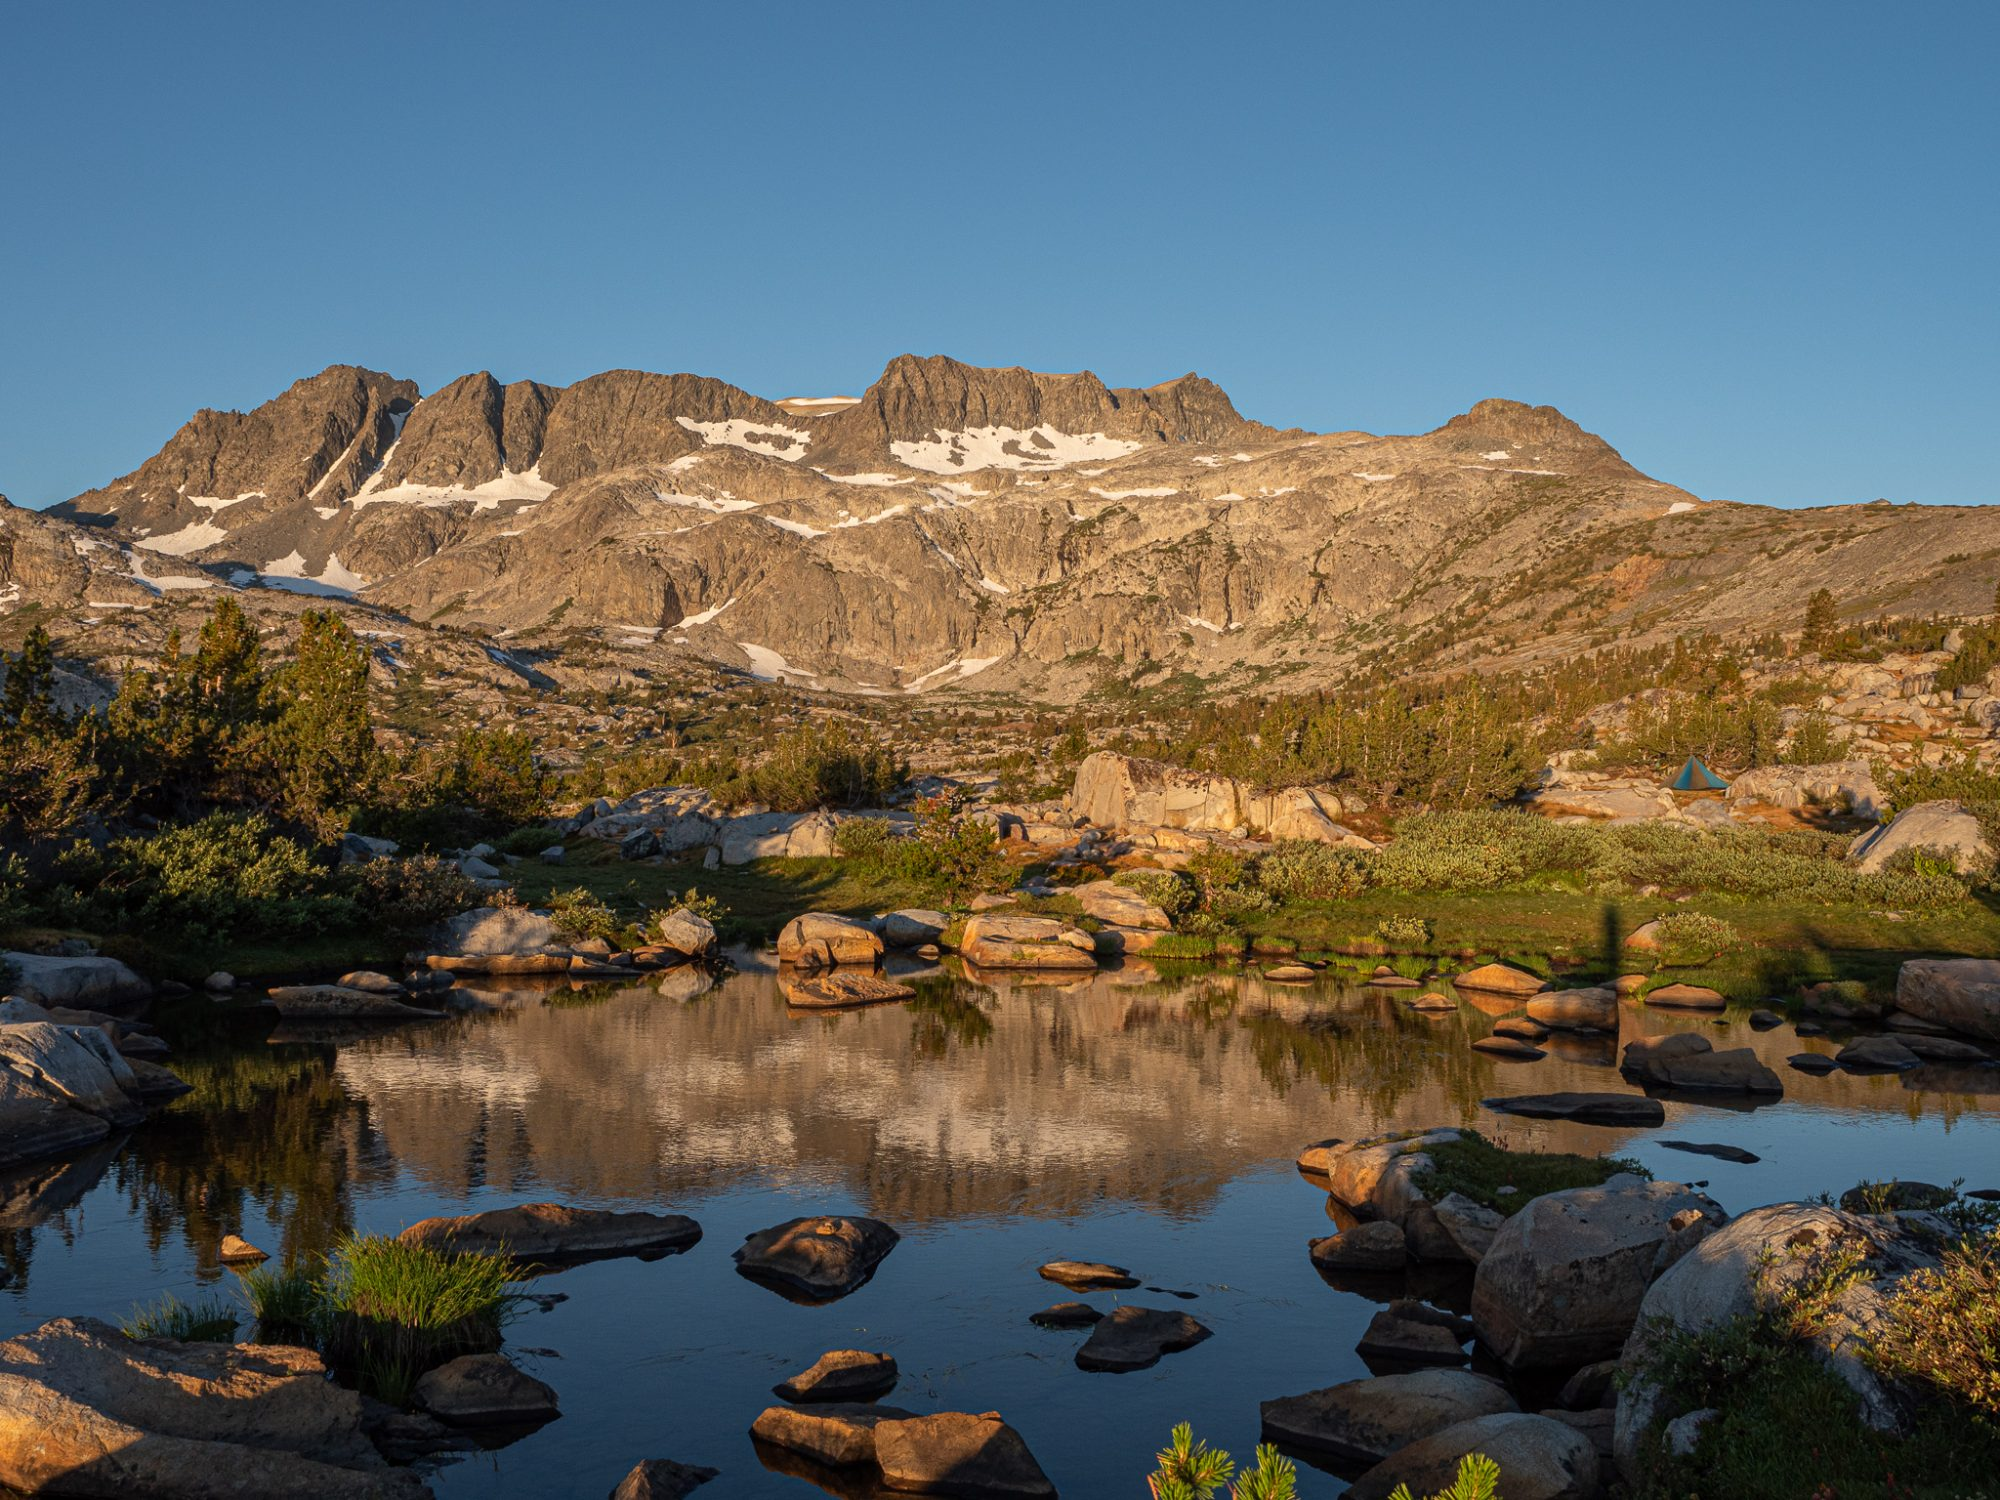 Sierra Reflection in Thousand Island Lake